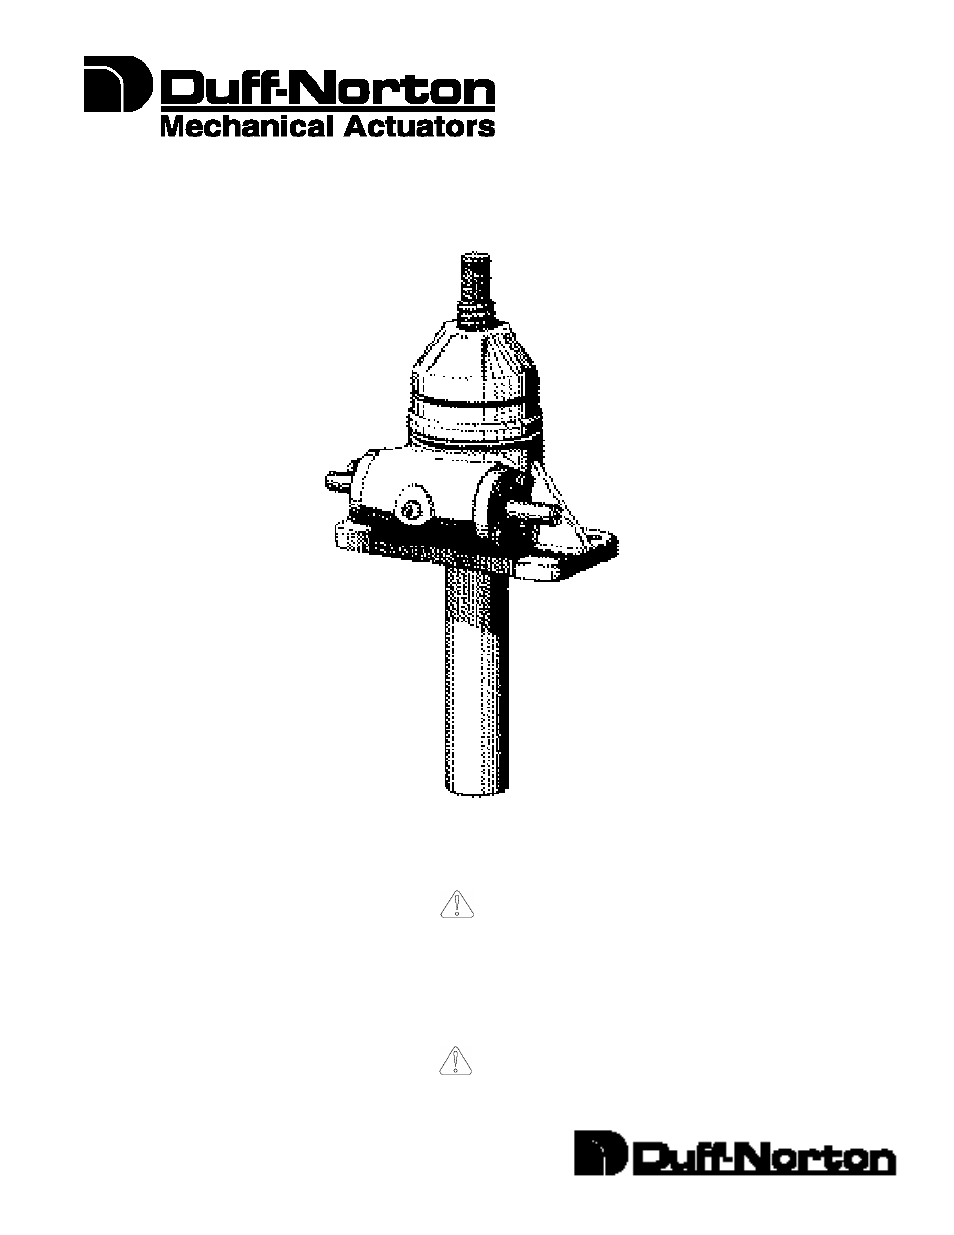 Duff Norton Actuator Wiring Diagram Library Ball Screw Translating User Manual 12 Pages